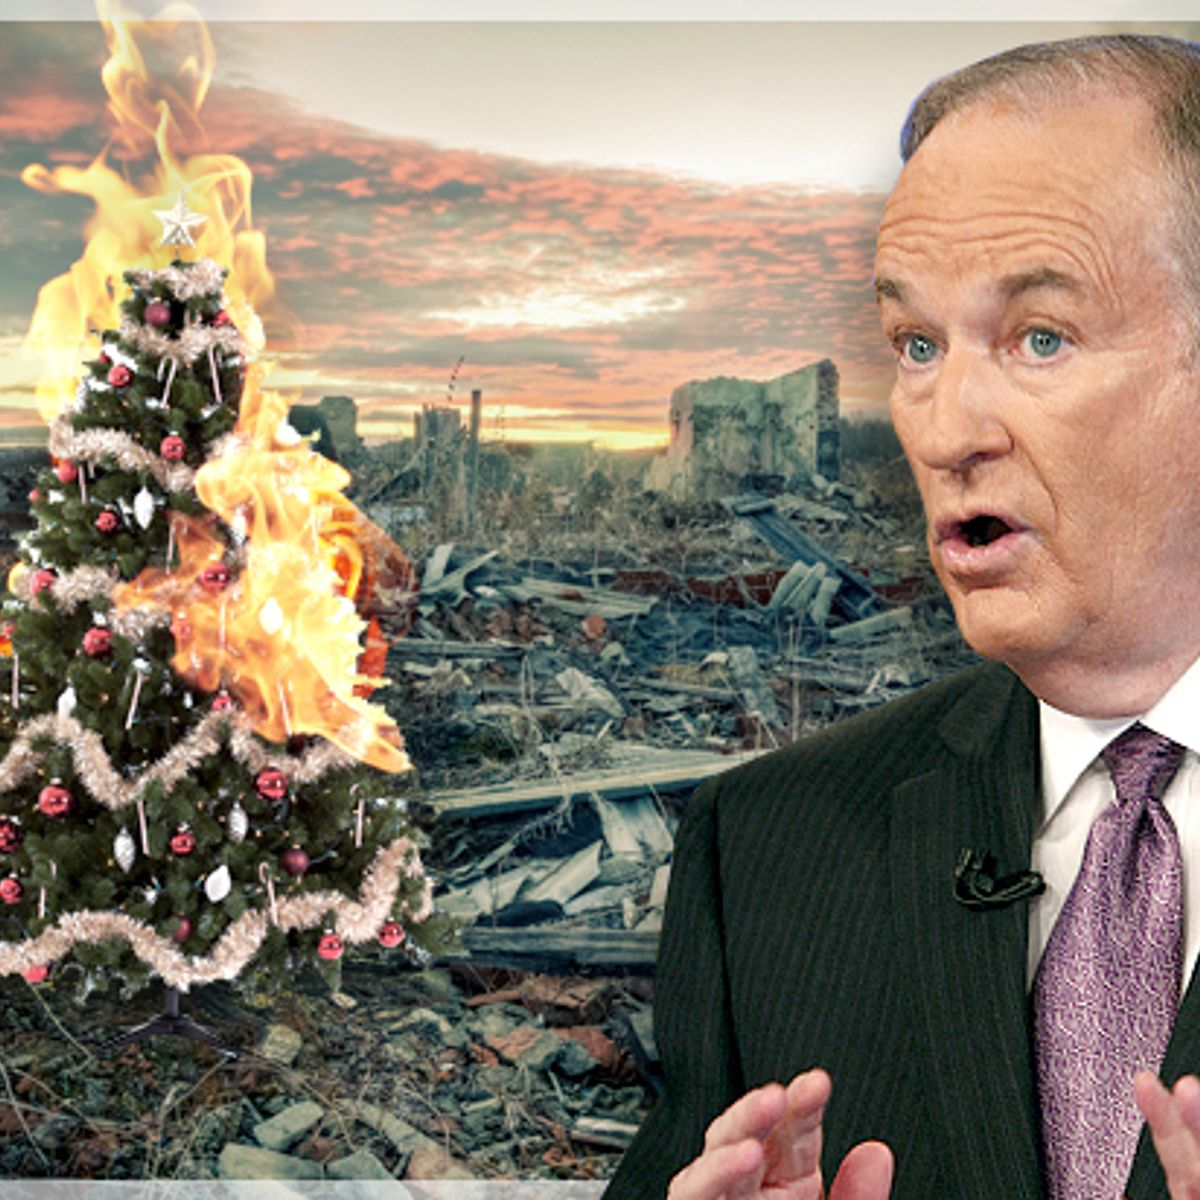 Real History Of Christmas.Actually The Right Invented The War On Christmas The